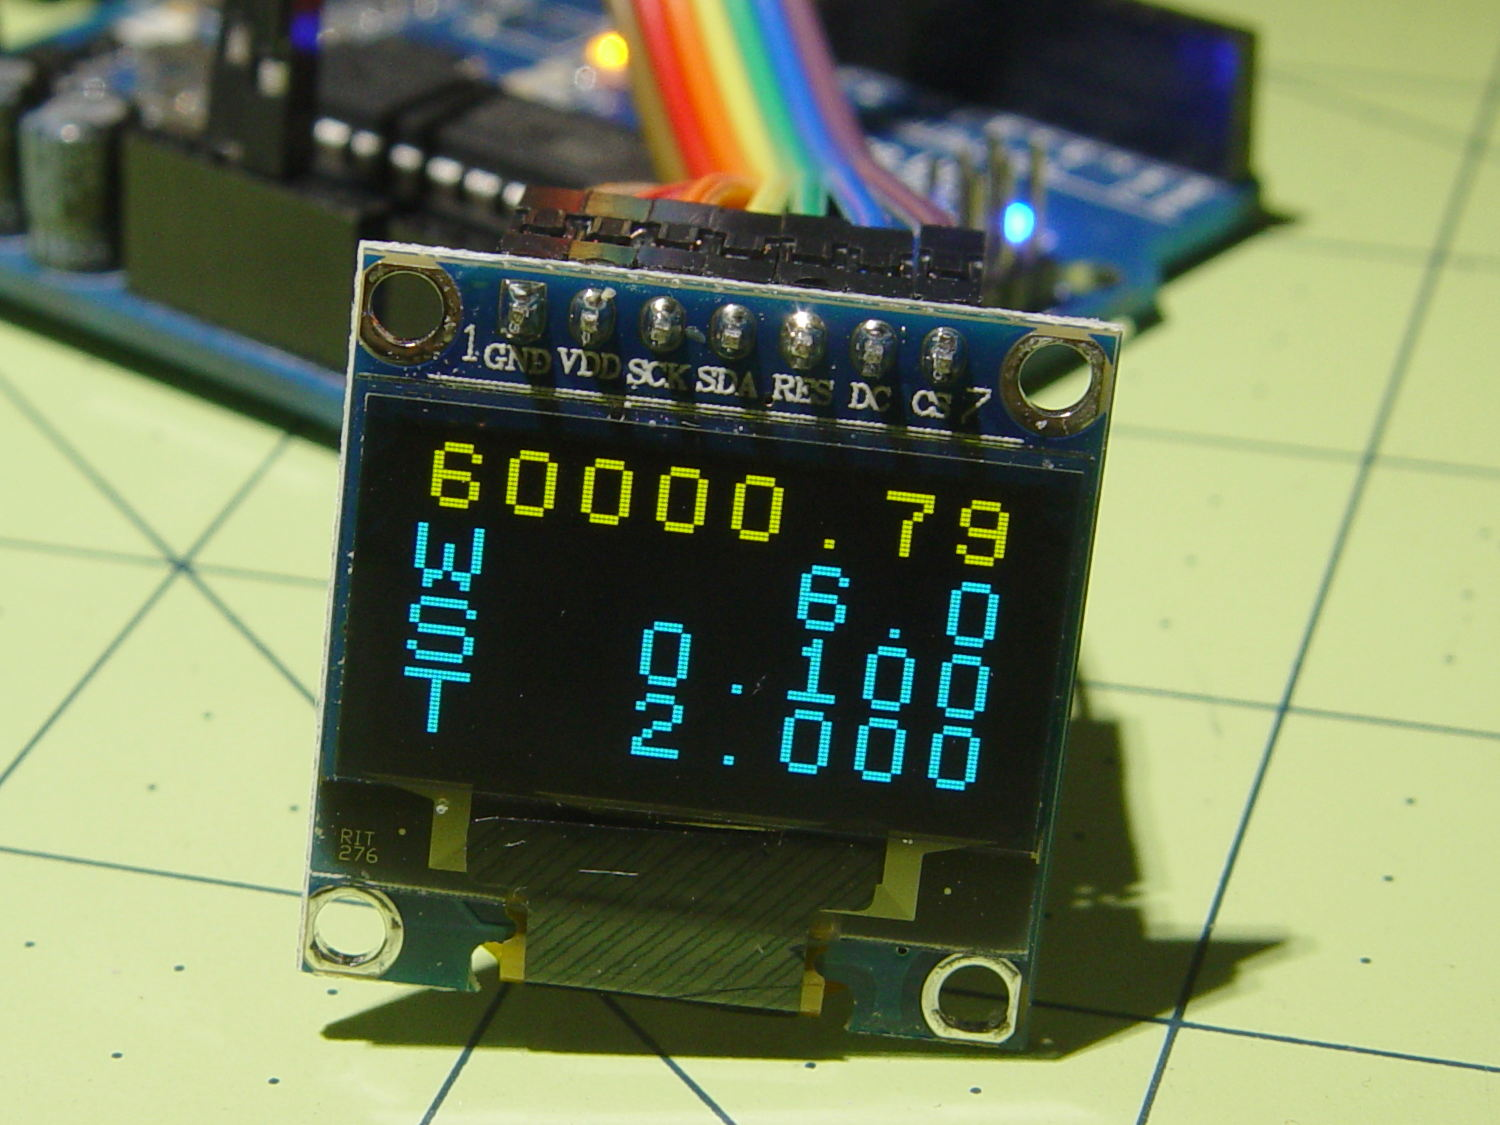 AD9850 DDS Module: OLED Display | The Smell of Molten Projects in